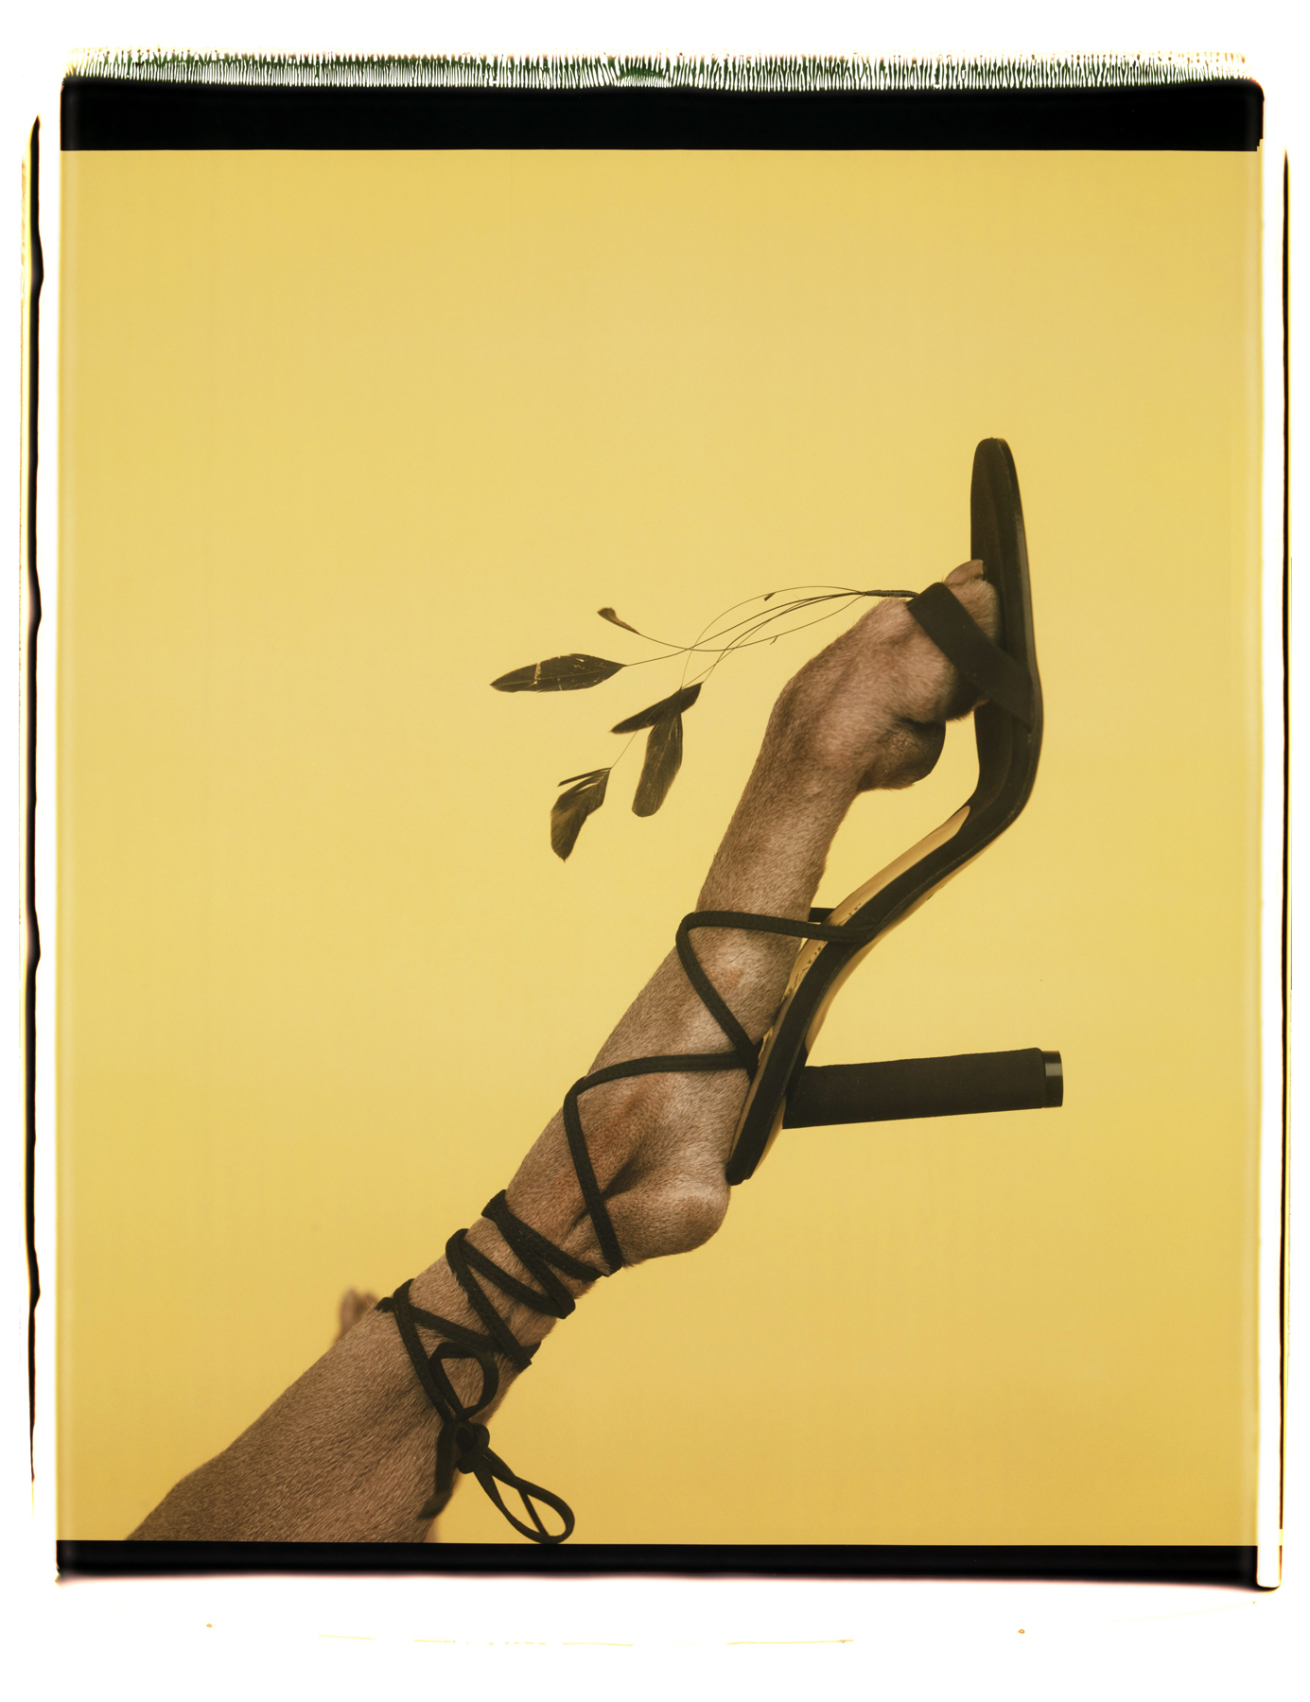 Fotó: William Wegman: Feathered Footwear, 1999 © William Wegman